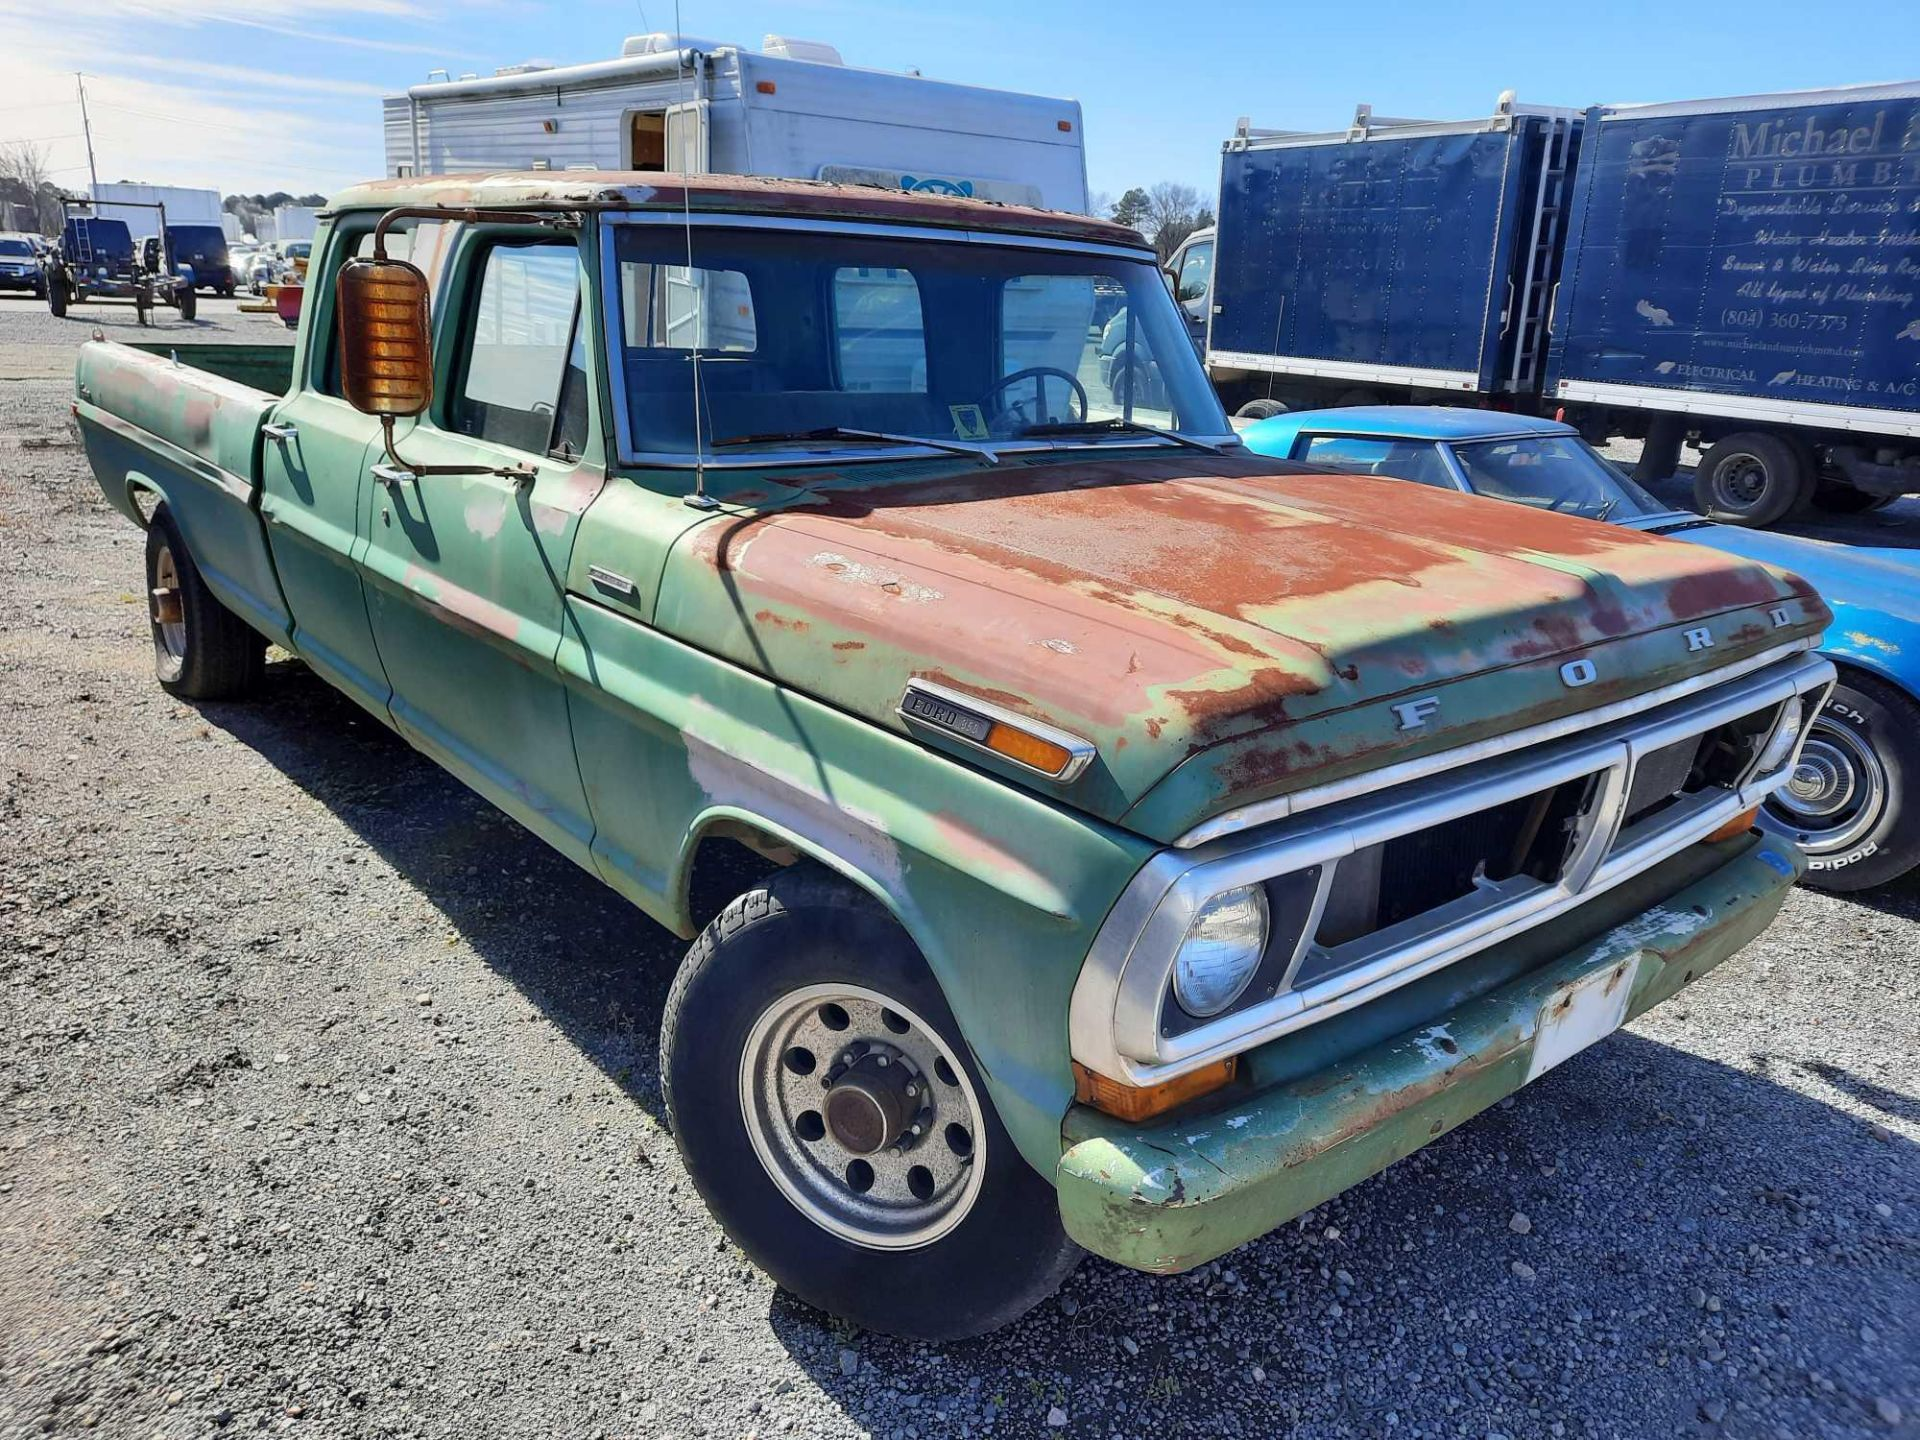 1972 FORD CREW CAB 350 PICK UP TRUCK (INOPERABLE) - Image 4 of 15